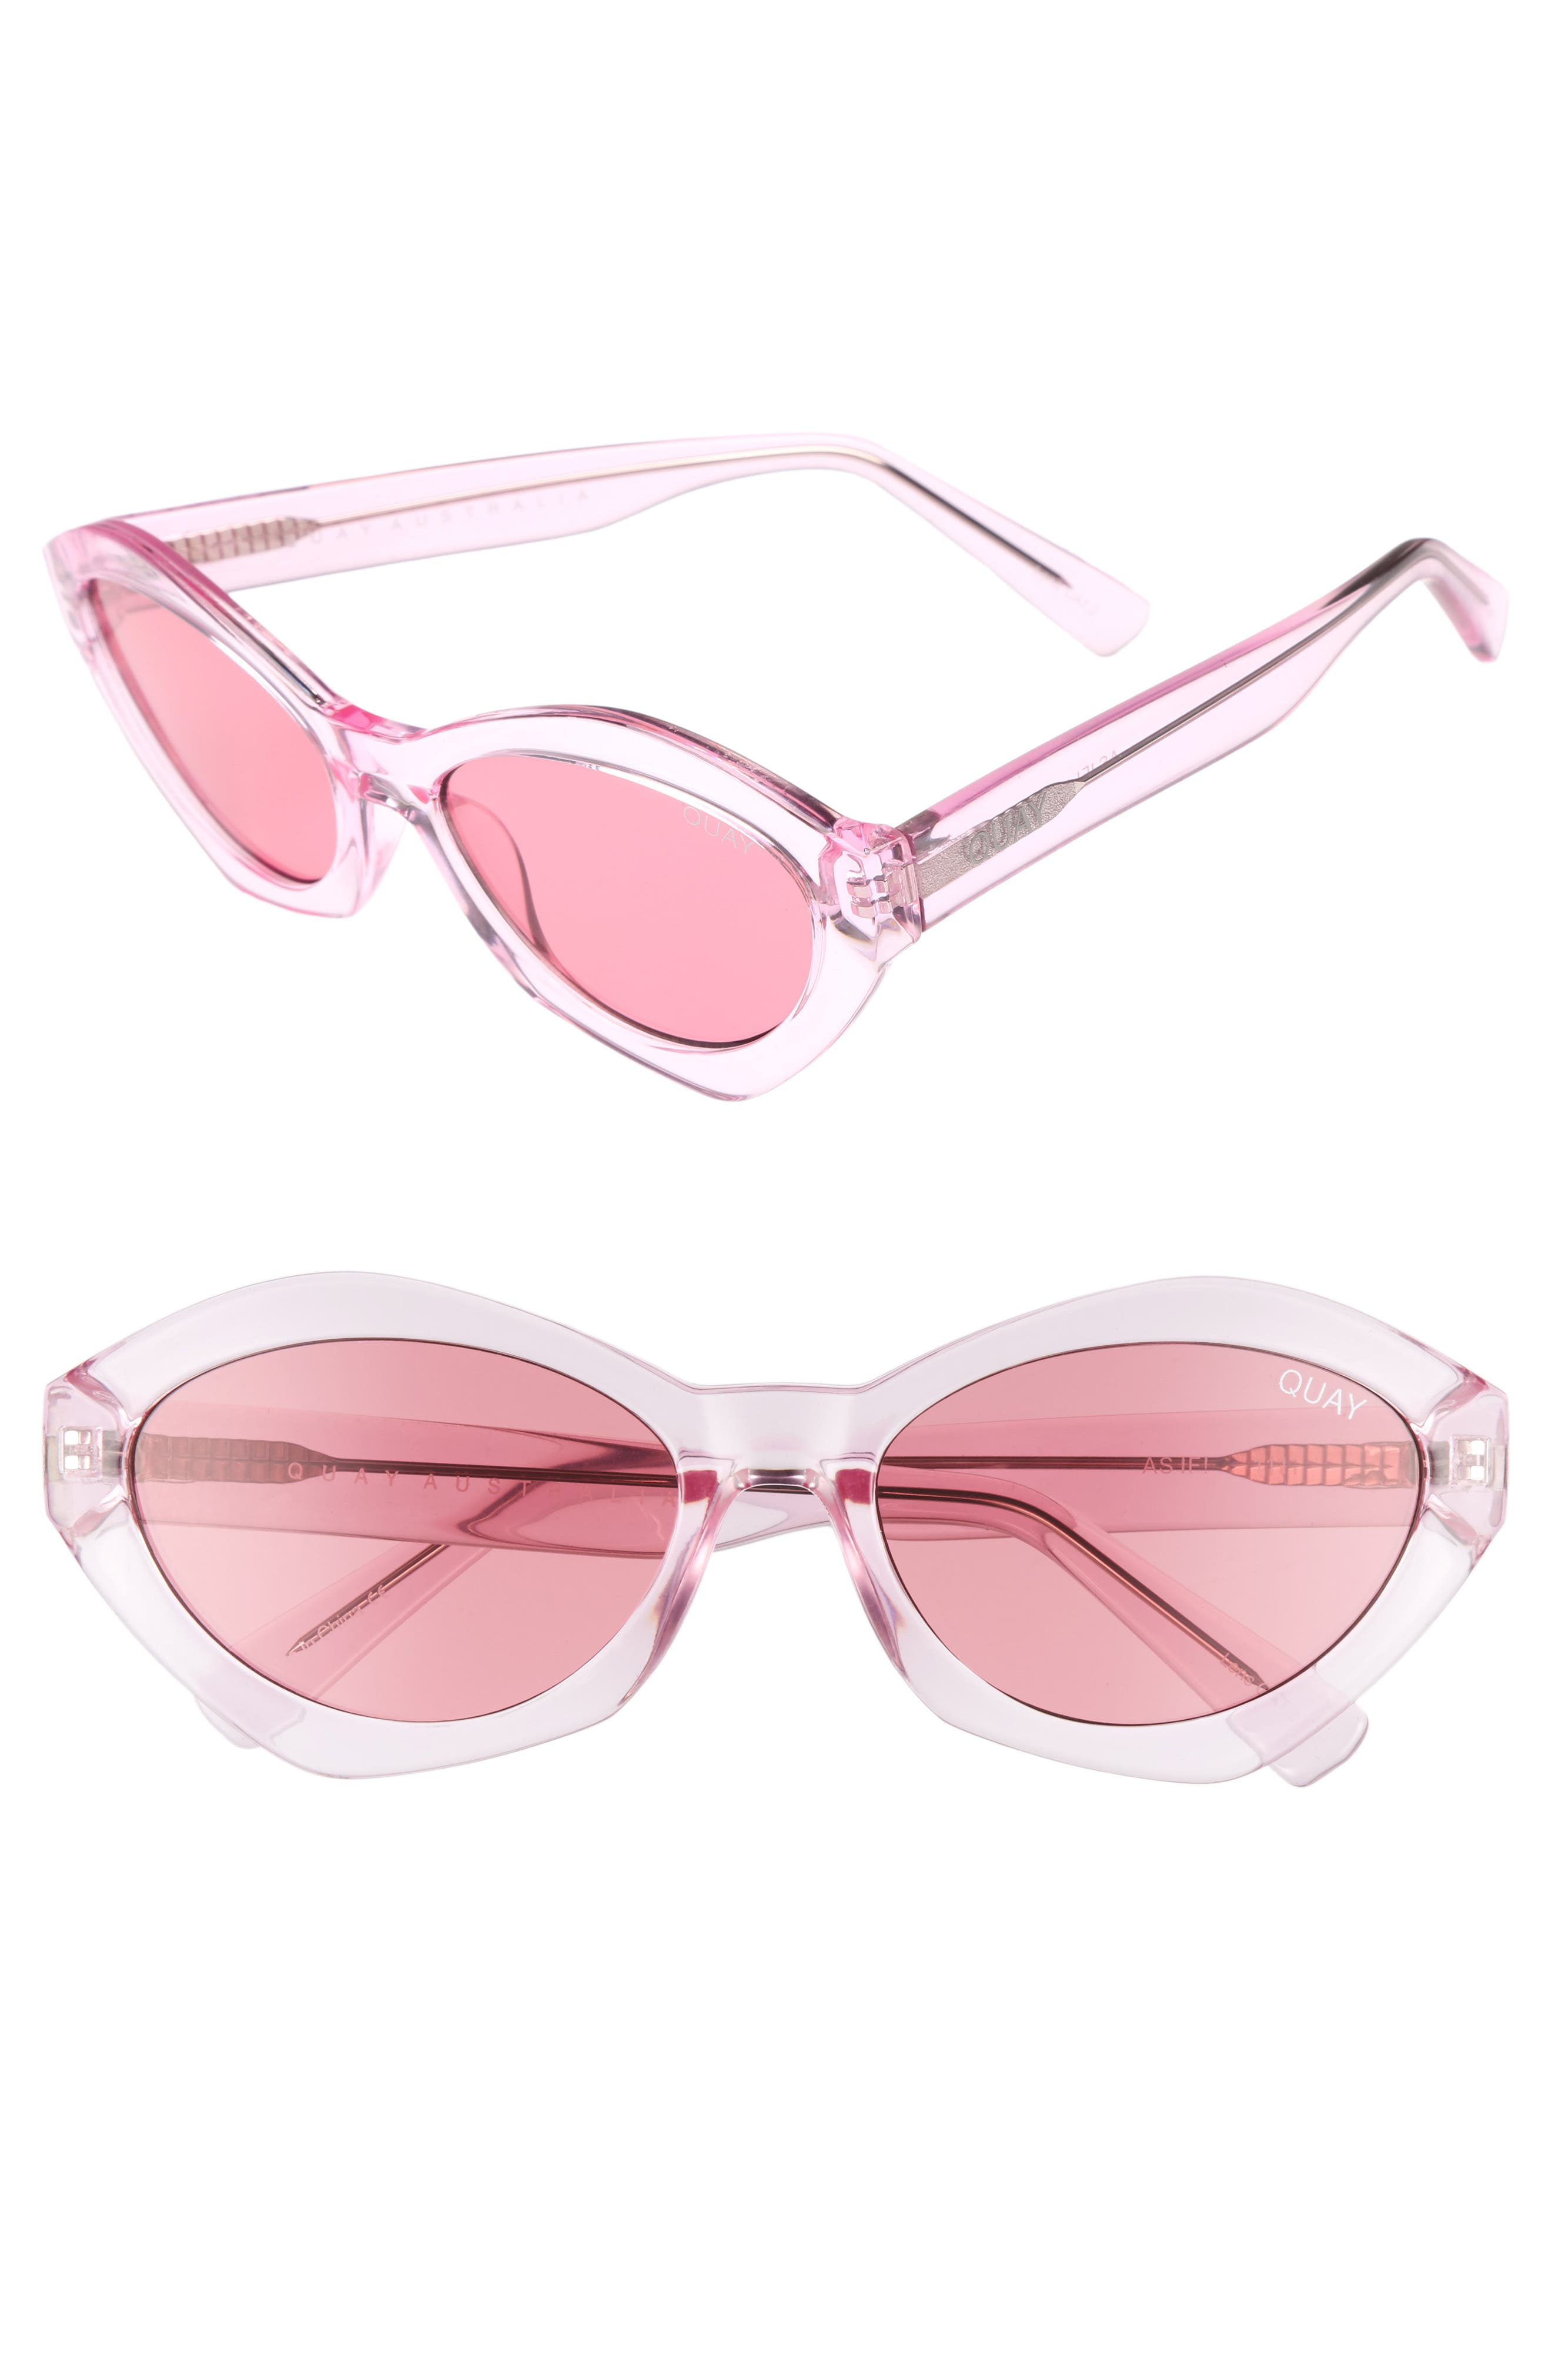 54mm As If Oval Sunglasses,                             Main thumbnail 1, color,                             Pink/ Pink